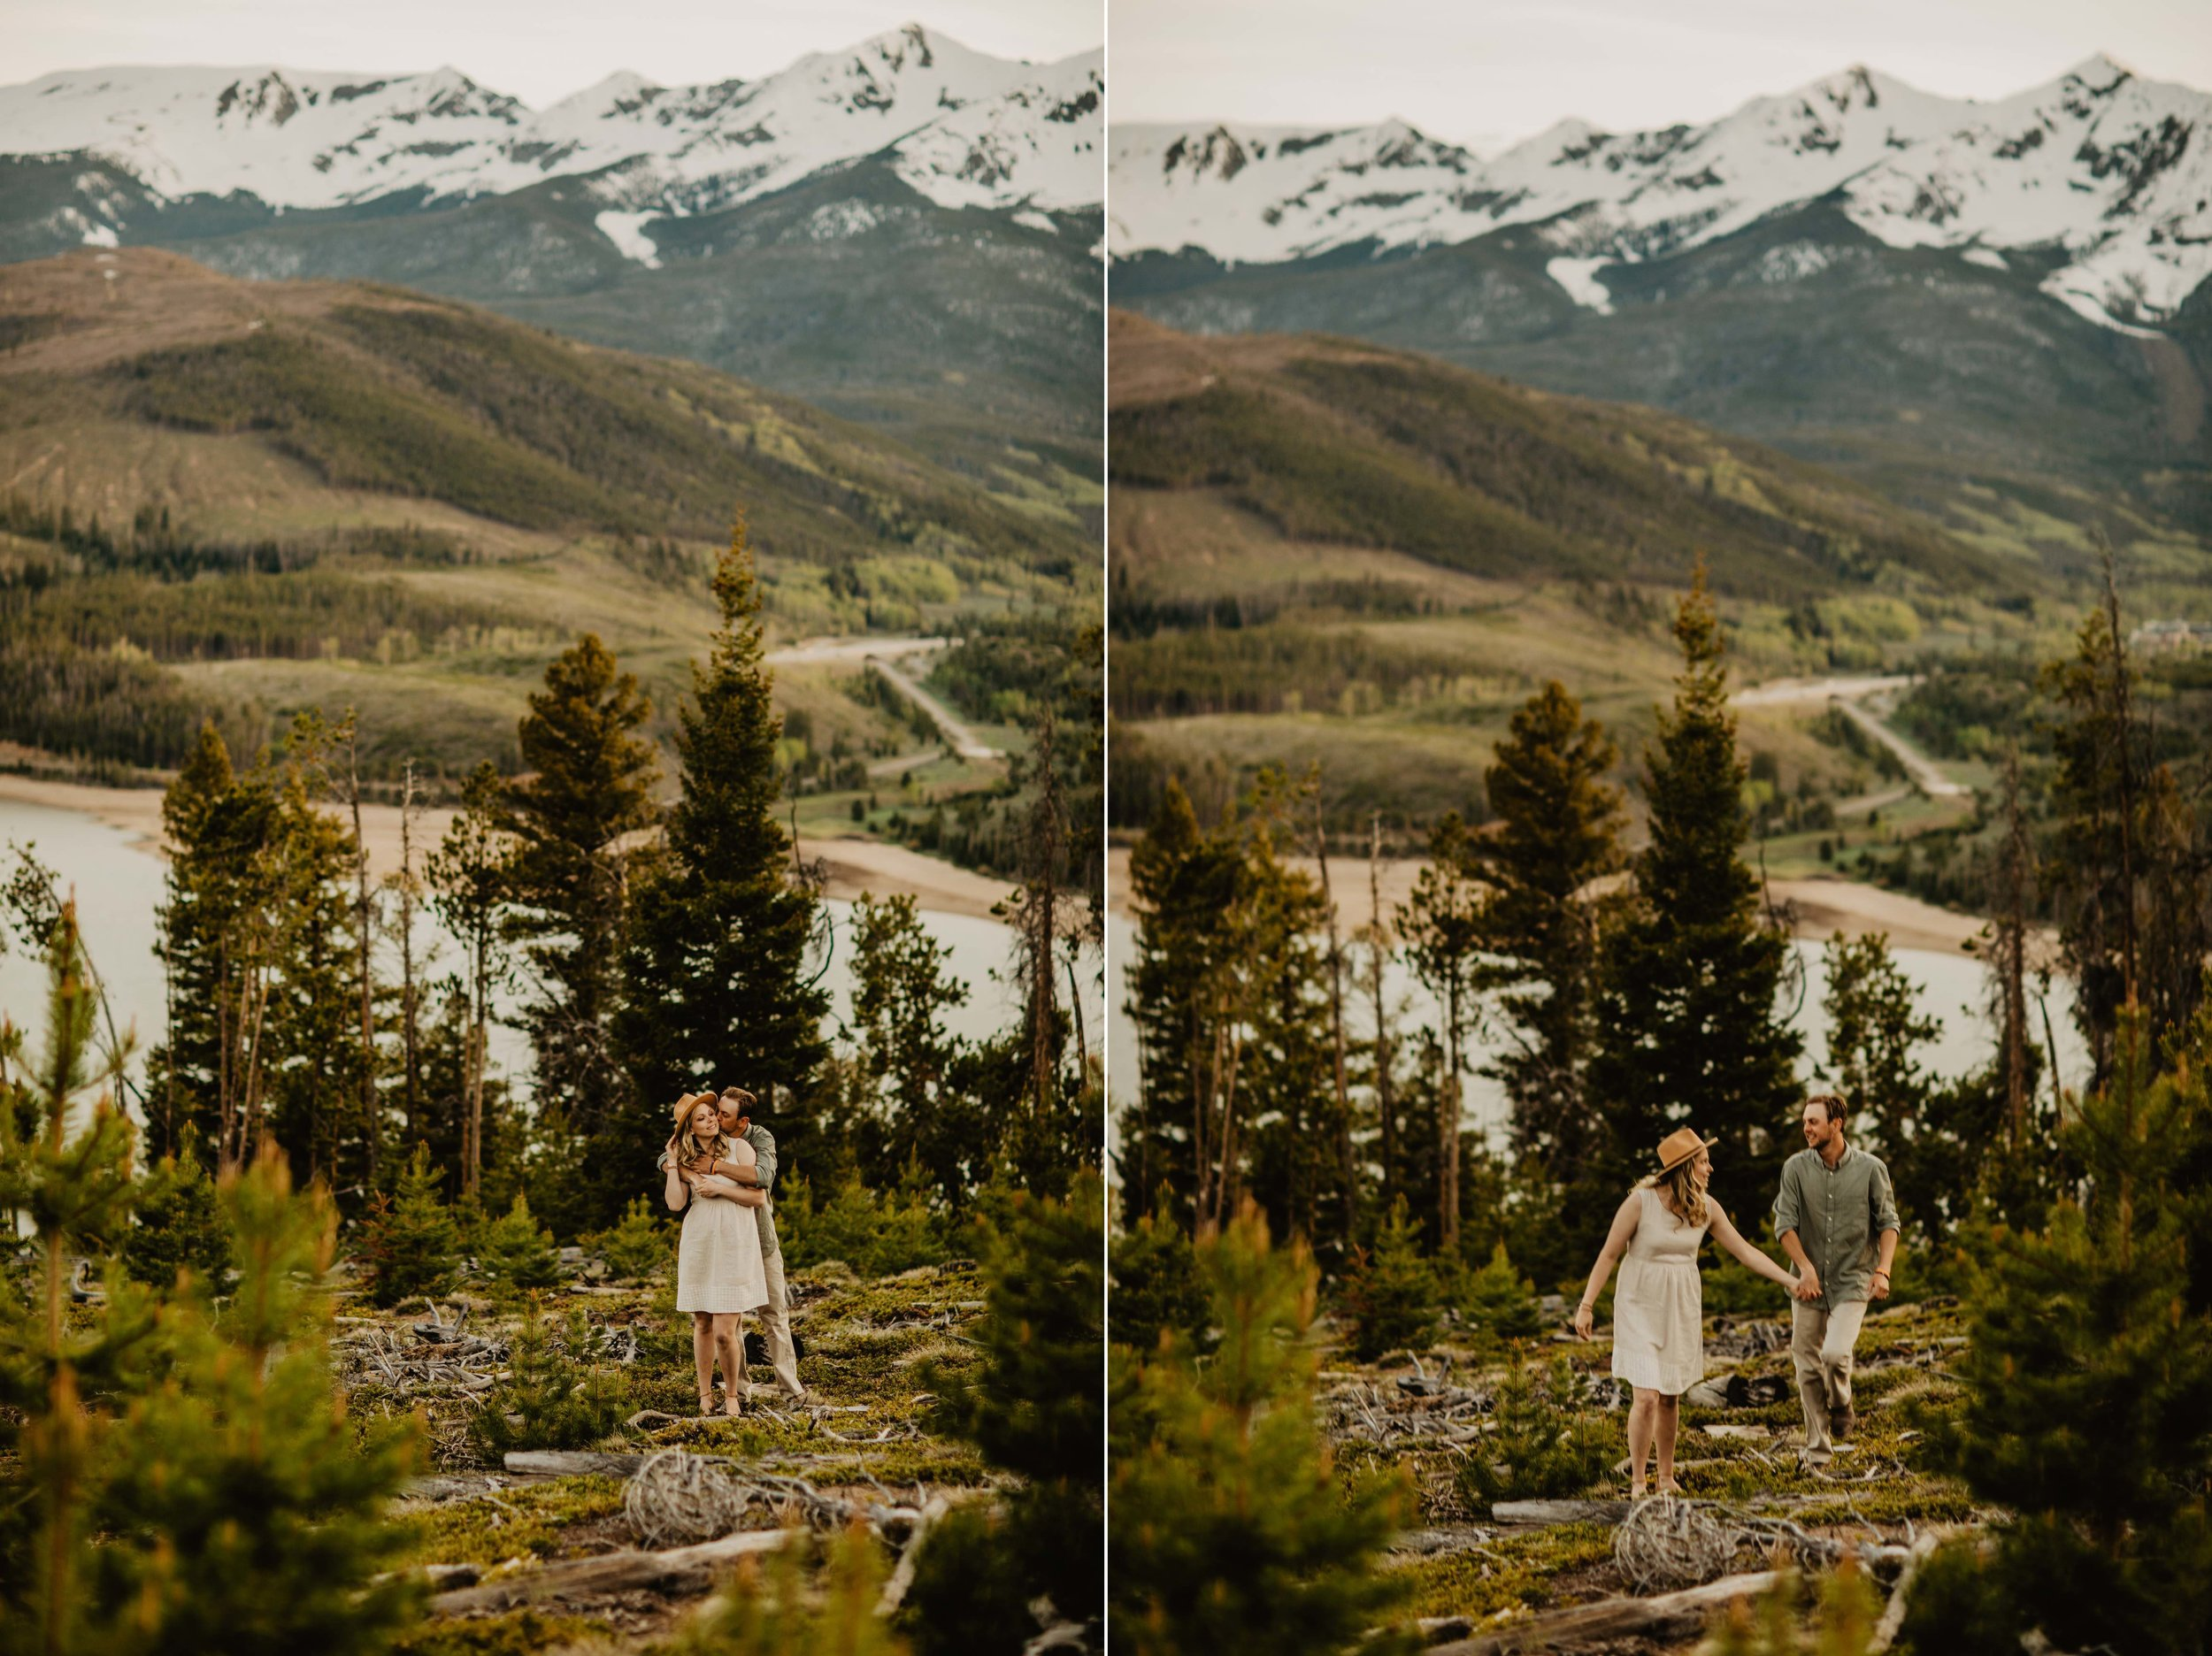 Kisa Conrad Favorites-0027sapphire-point-breckenridge-colorado-photography-engagement.jpeg